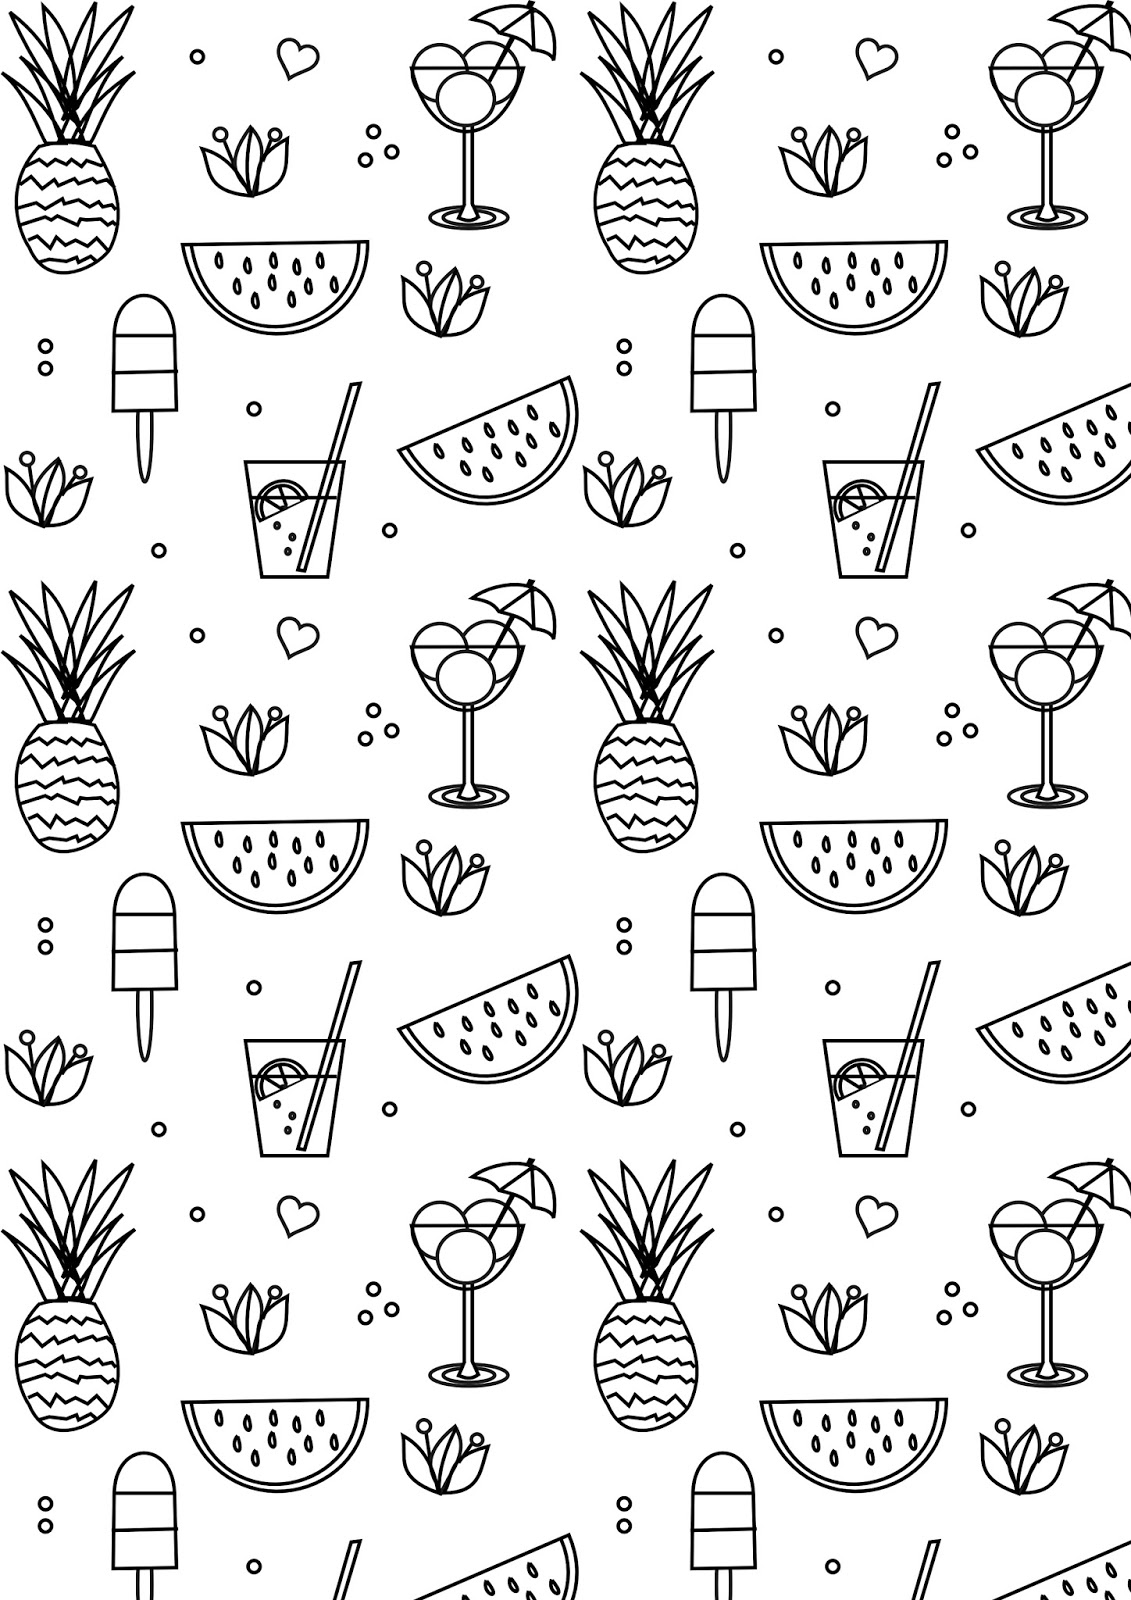 Free printable summer coloring page - ausdruckbare ...